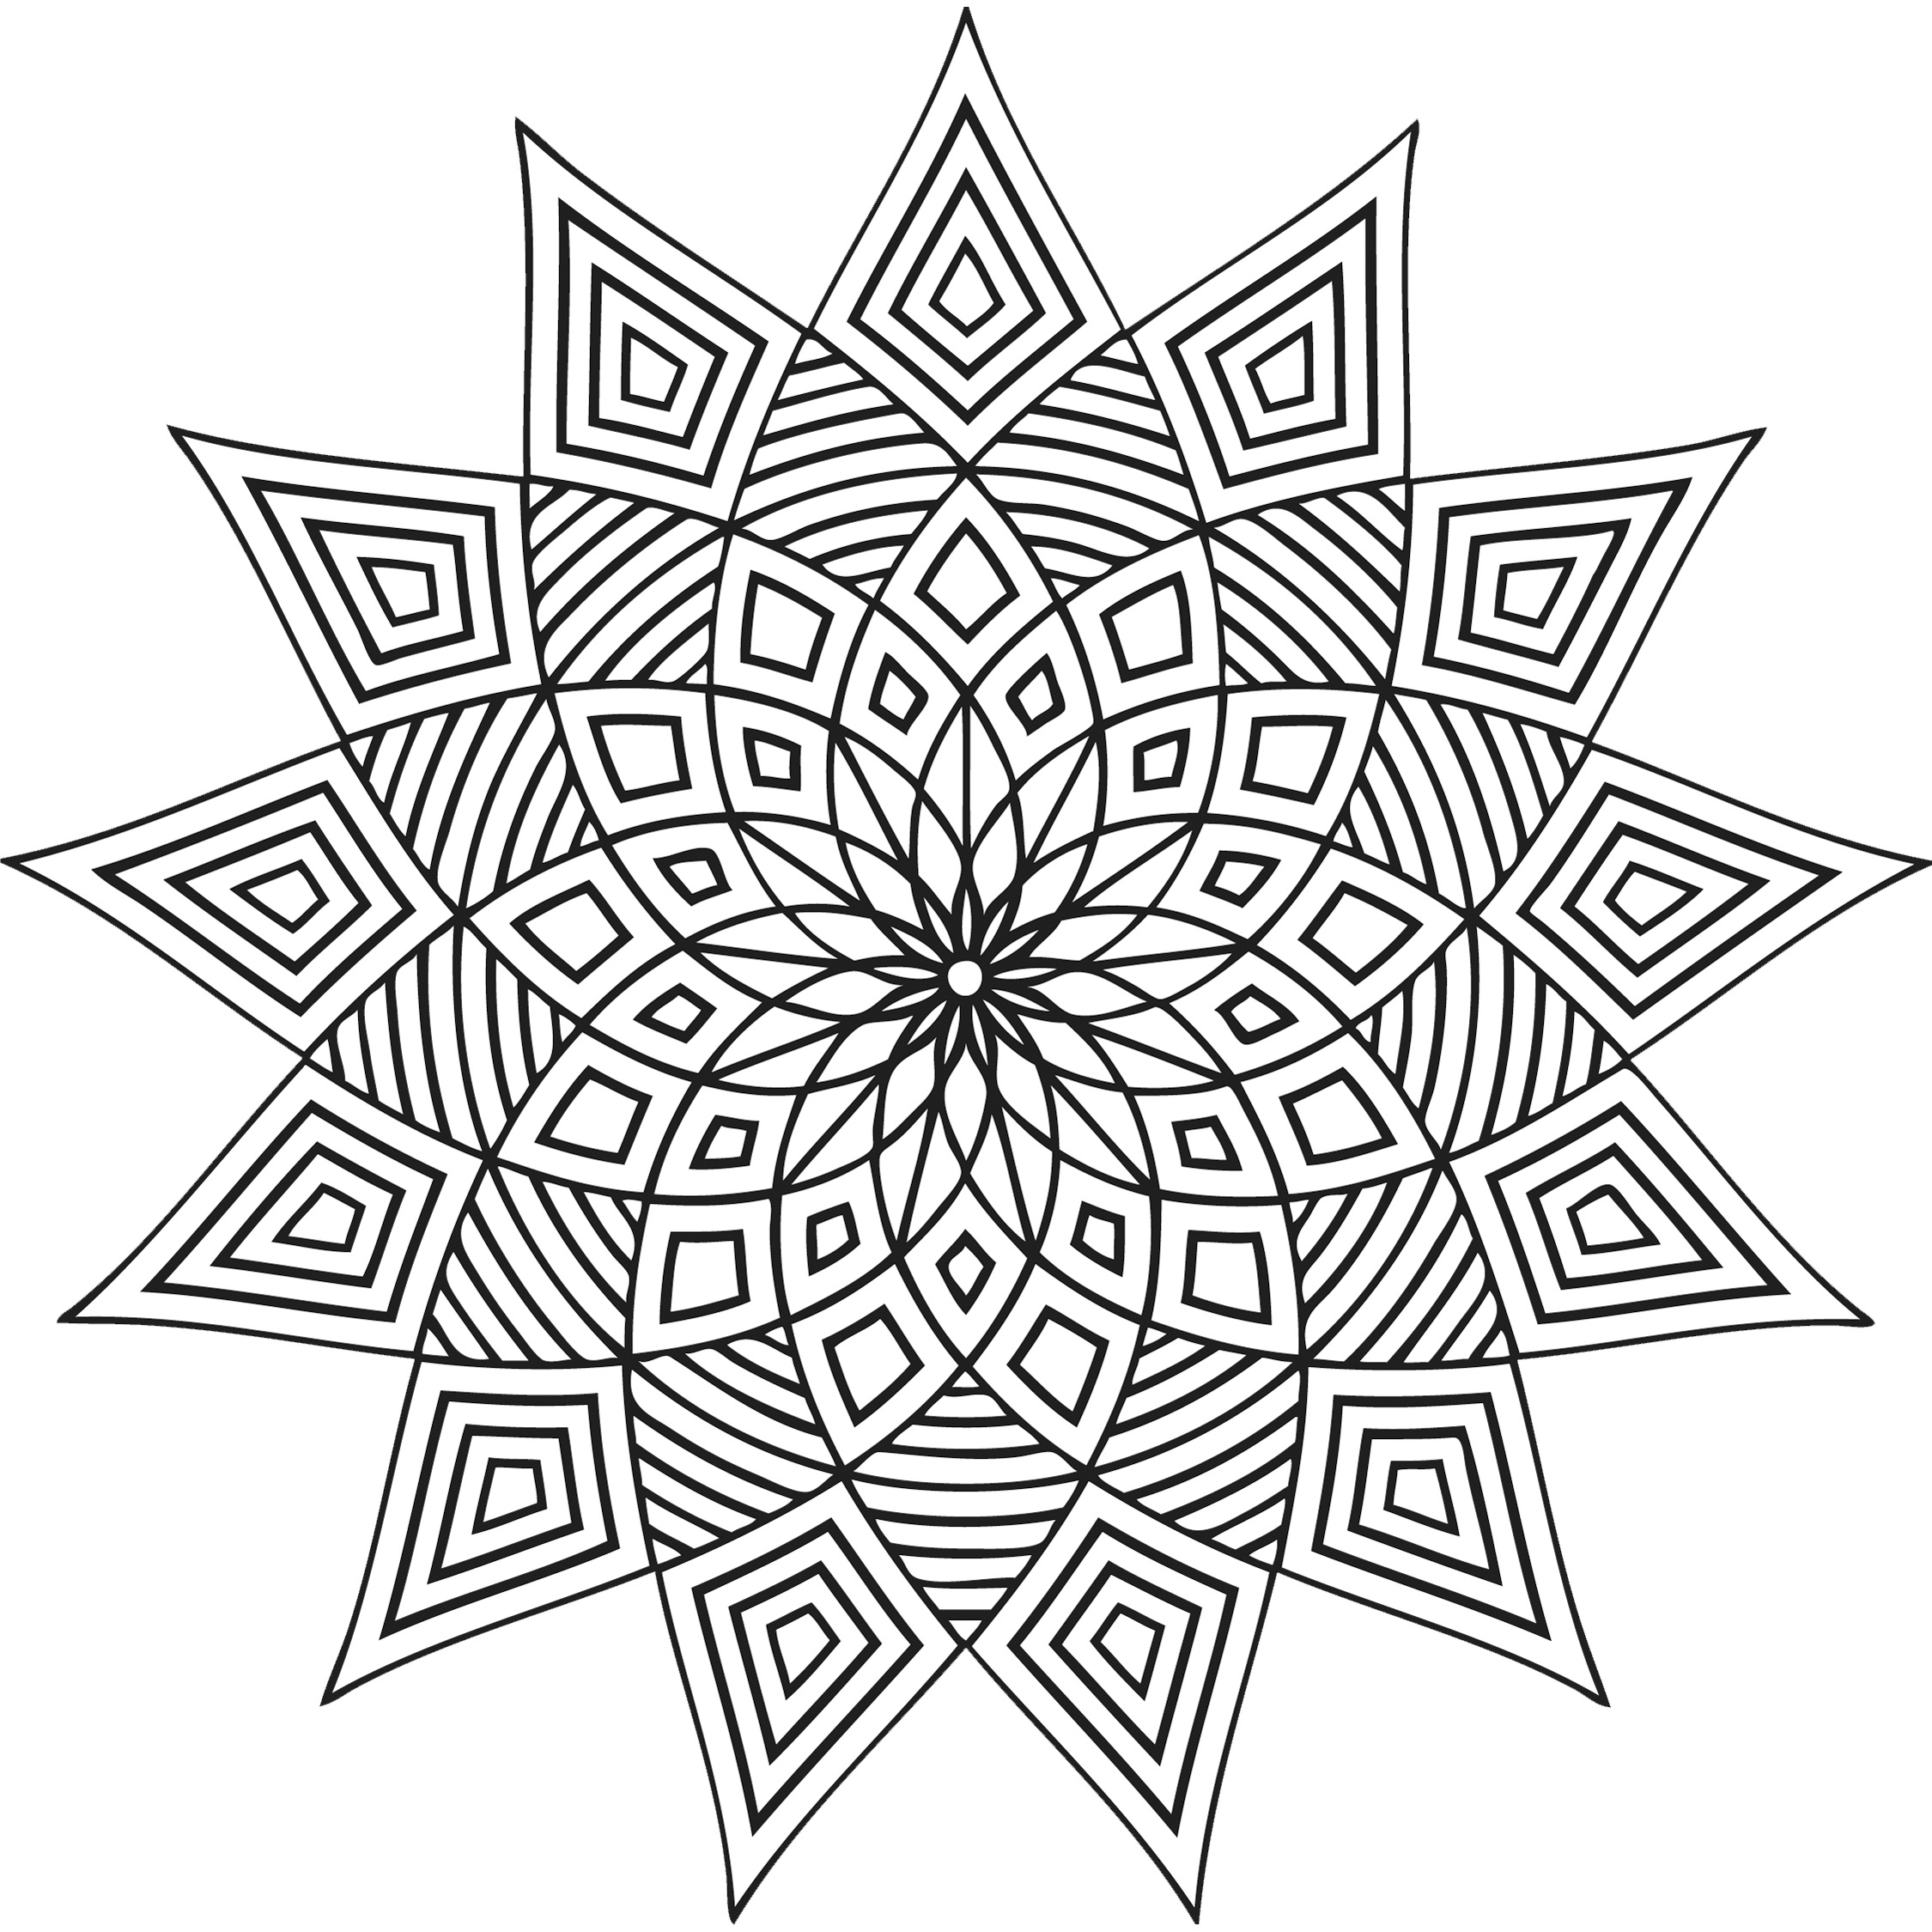 pattern coloring pages for kids mosaic patterns coloring pages coloring home pages pattern kids for coloring